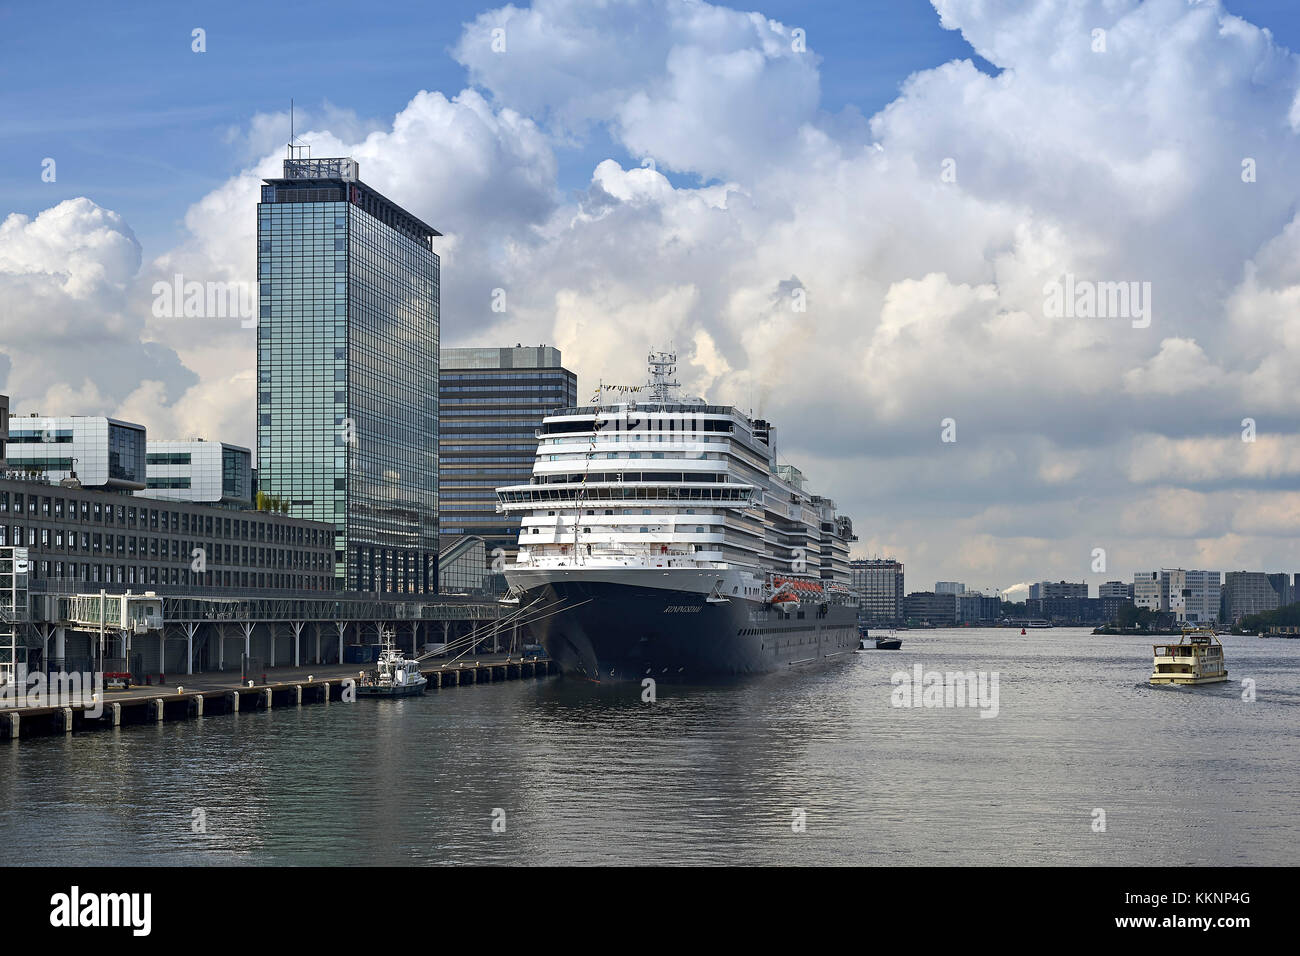 The Kingsdam in Amsterdam, North Holland, Netherlands - Stock Image